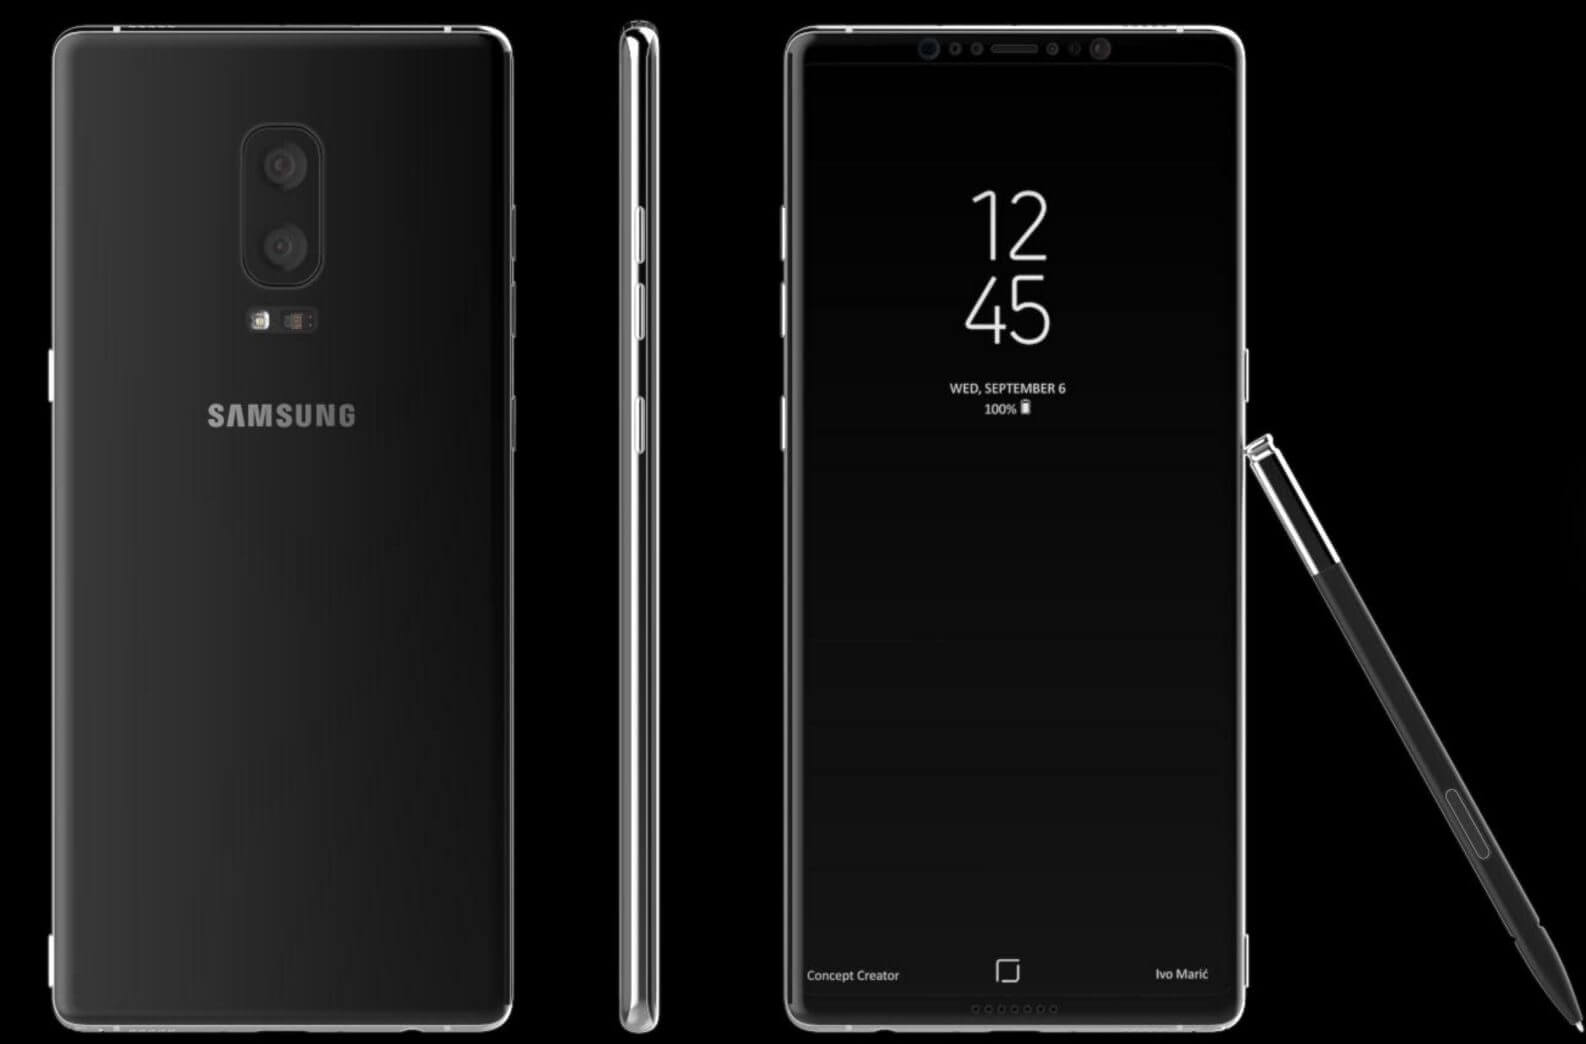 Vazamento mostra possível design final do samsung galaxy note 8 com s-pen